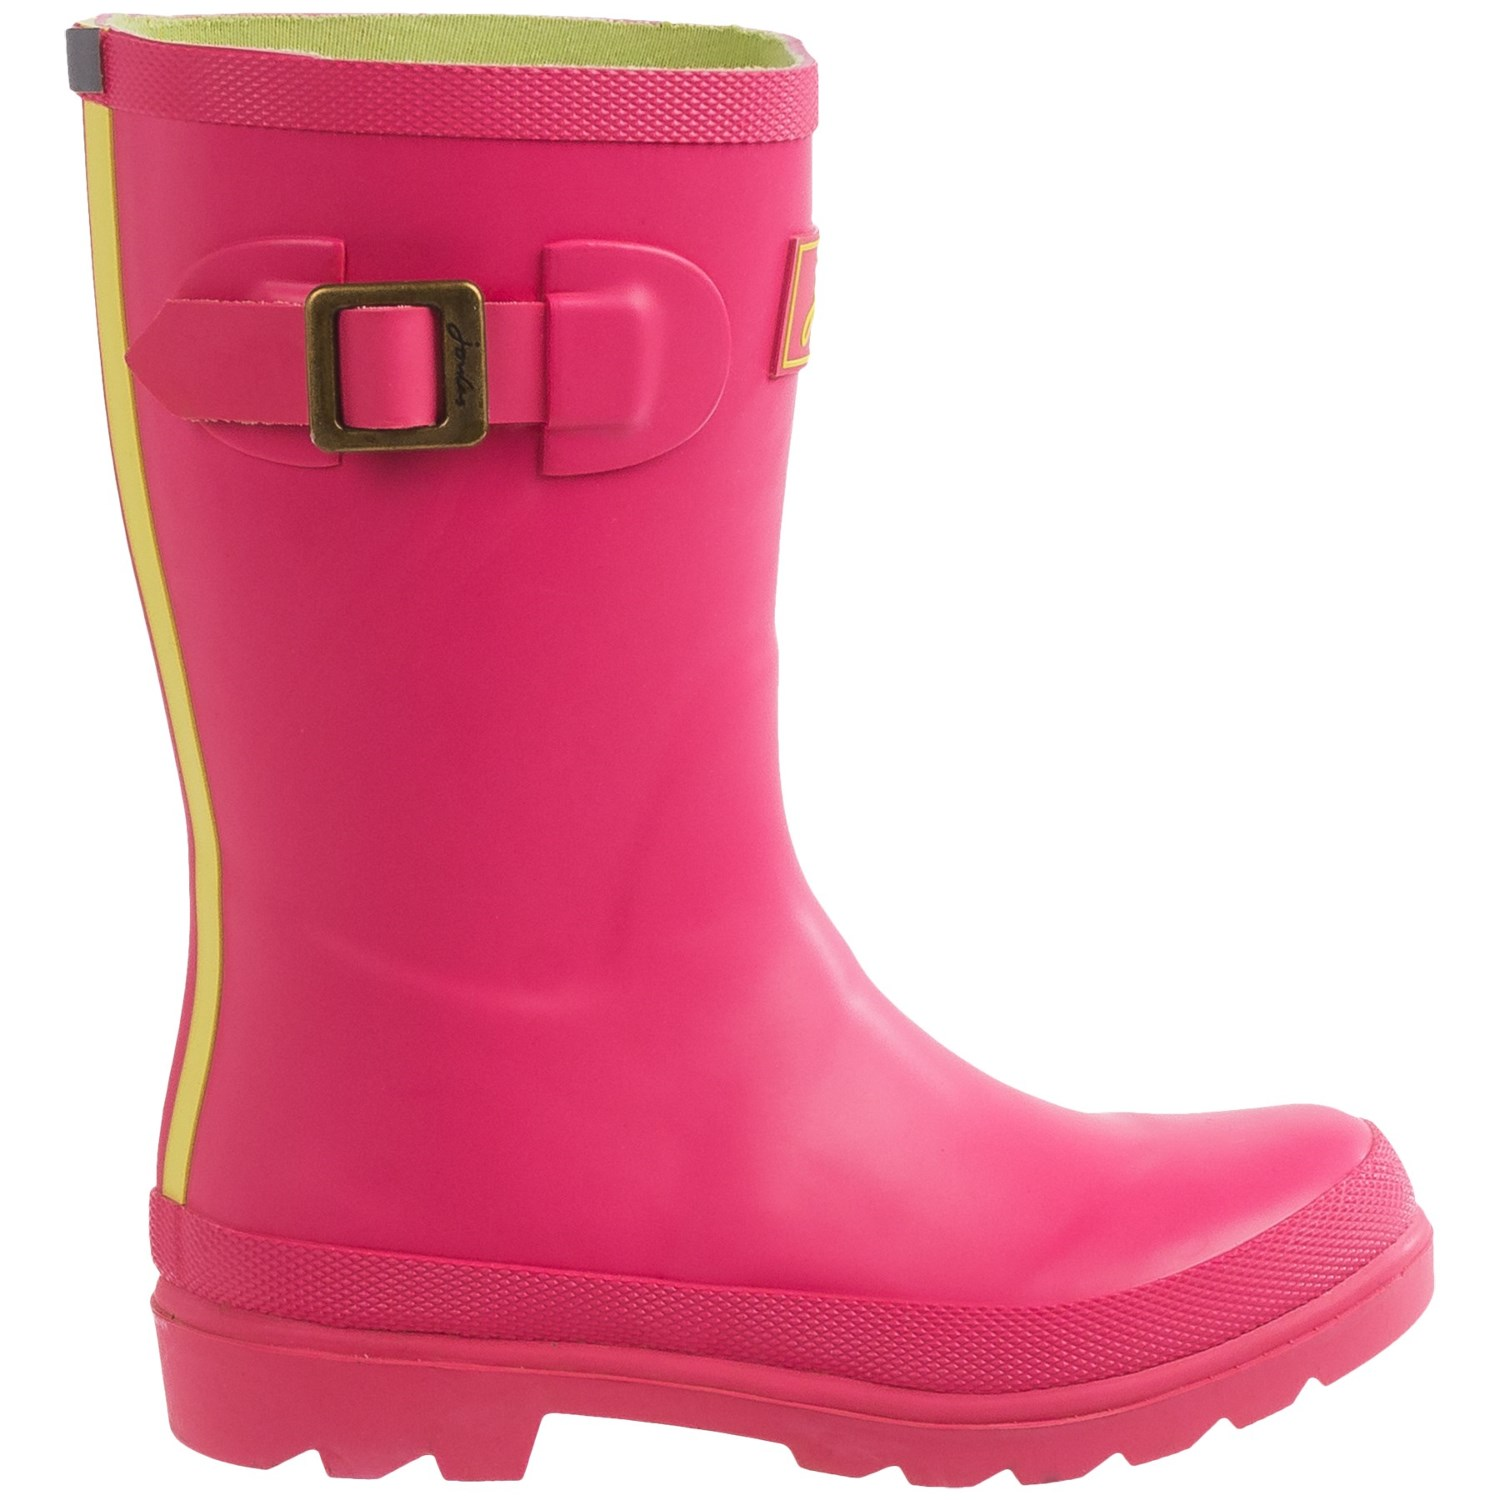 Find great deals on eBay for little girls rain boots. Shop with confidence.